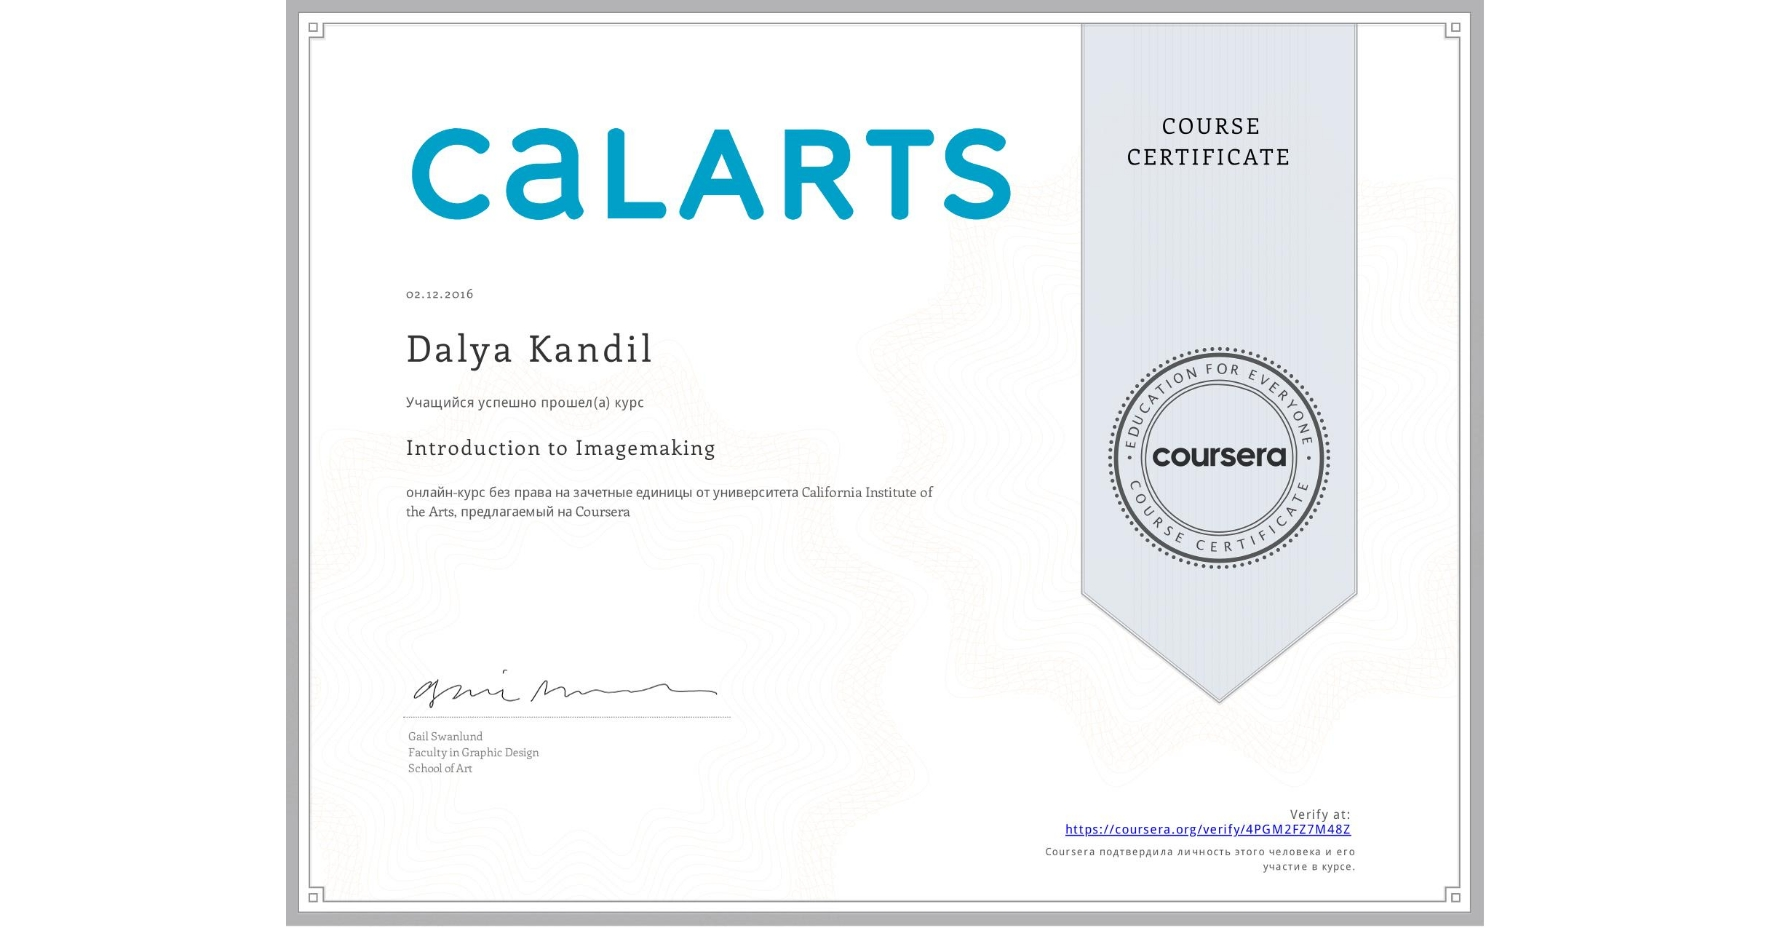 View certificate for Dalya Kandil, Introduction to Imagemaking, an online non-credit course authorized by California Institute of the Arts and offered through Coursera